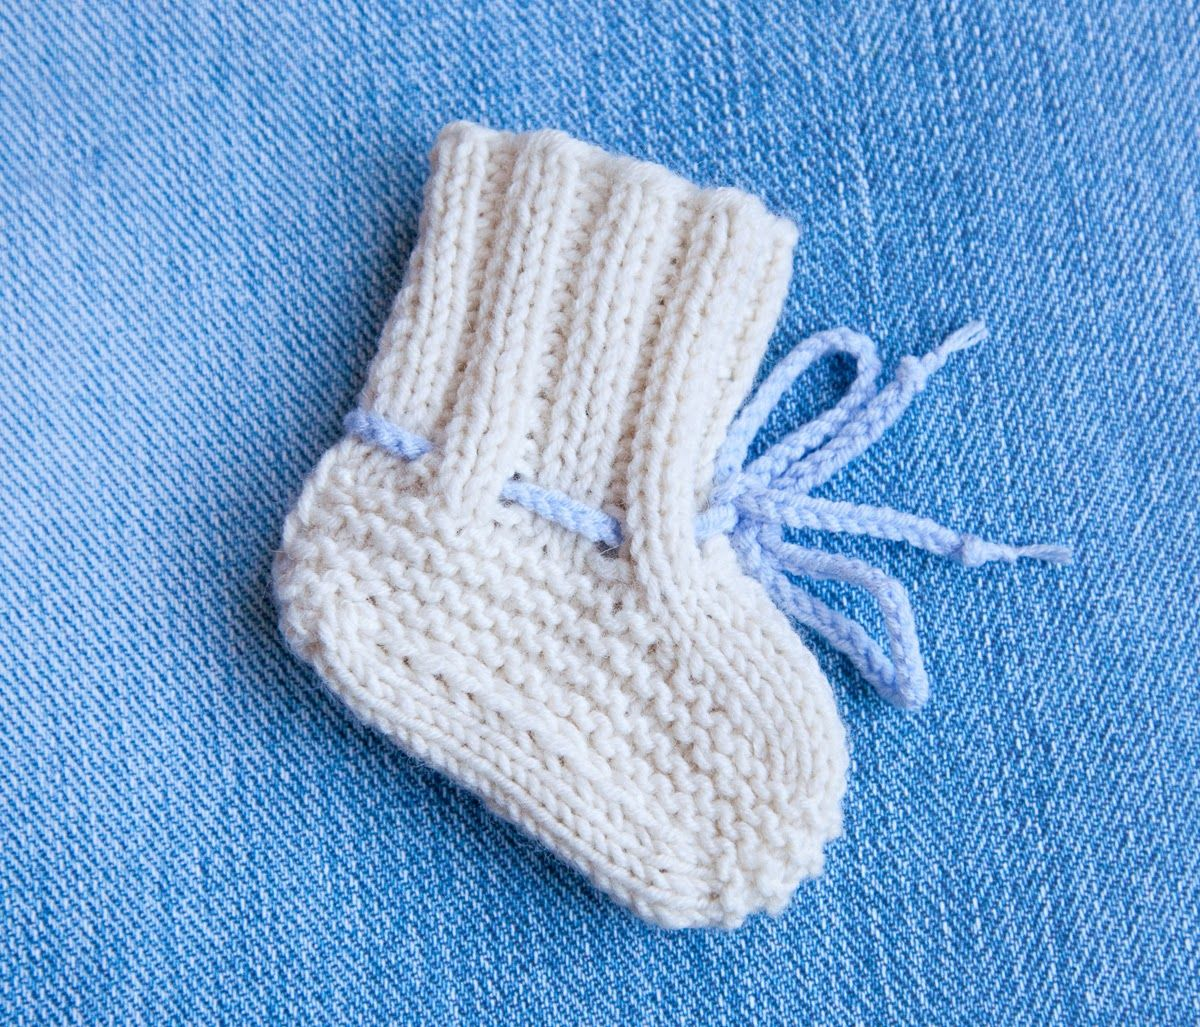 Free baby booties pattern baby booties ugg free knitting pattern free baby booties pattern baby booties ugg free knitting pattern step by step clear instructions bankloansurffo Choice Image